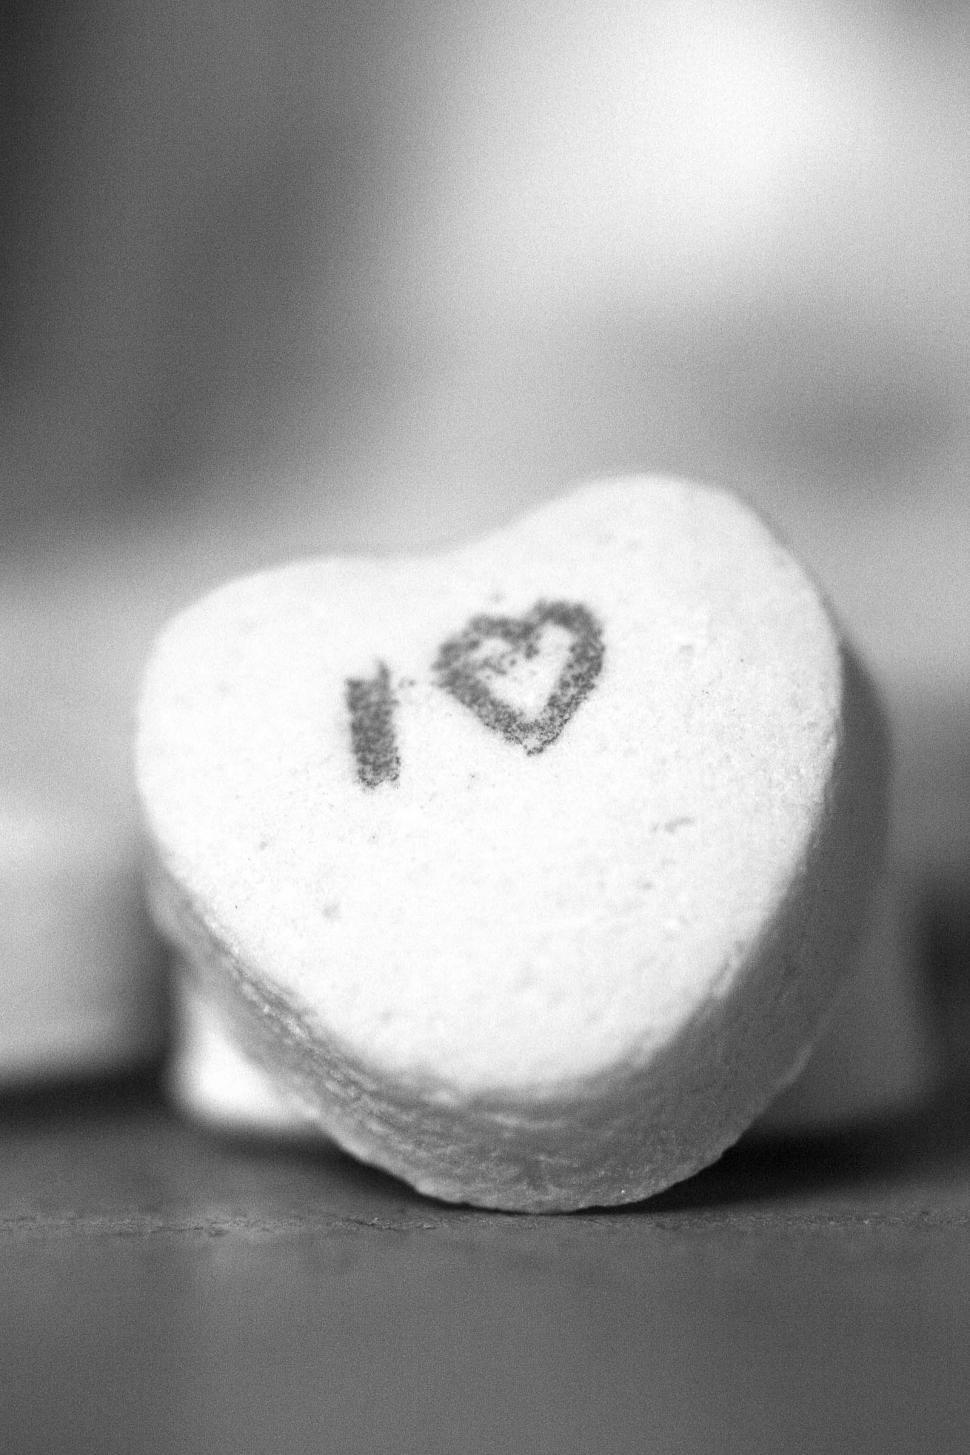 Download Free Stock HD Photo of Black and white heart Online